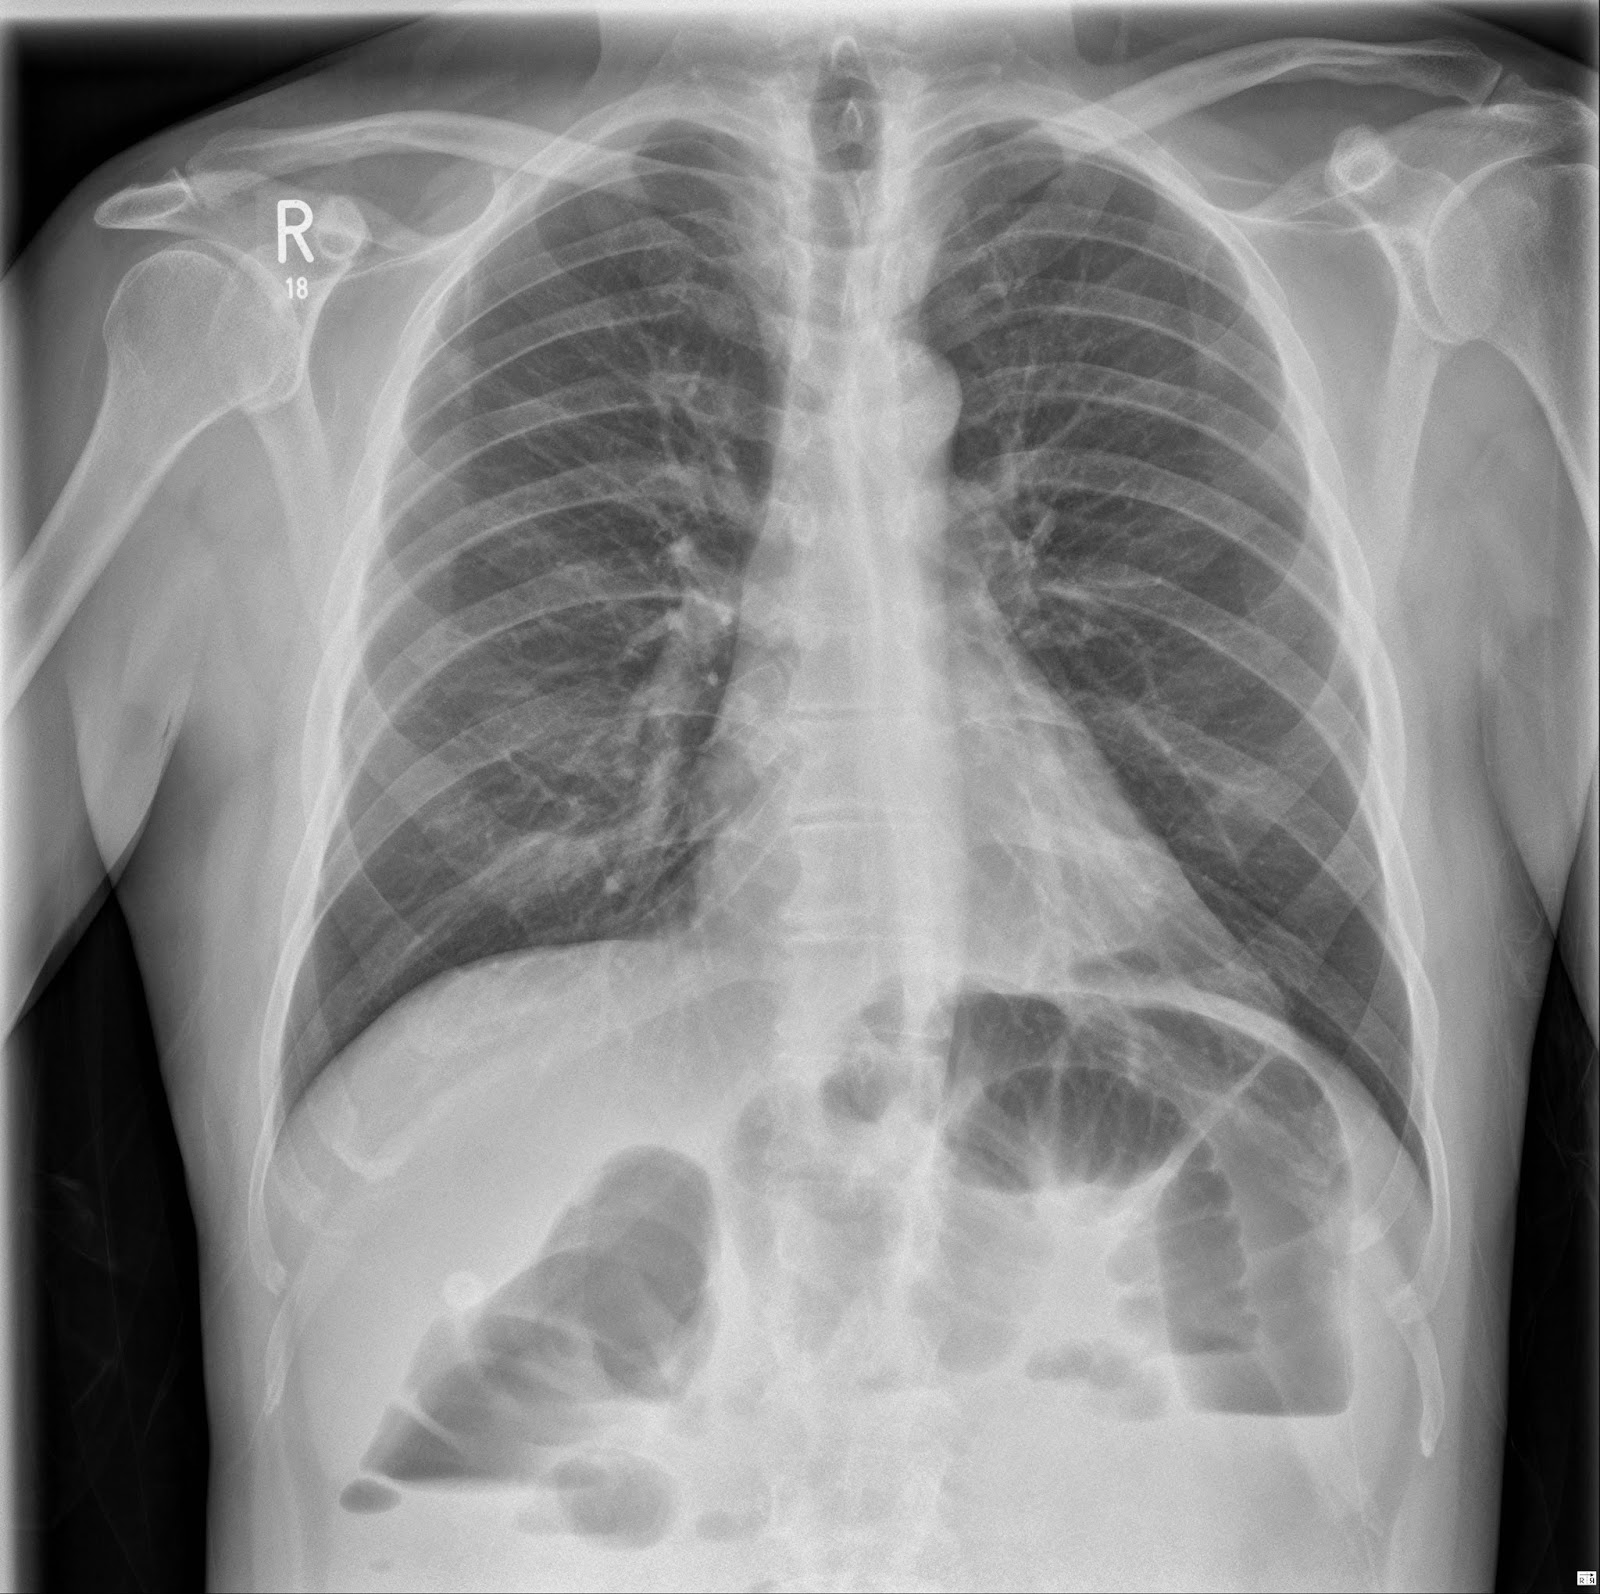 the xray doctor: xrayoftheweek 13: can you pinpoint the ...